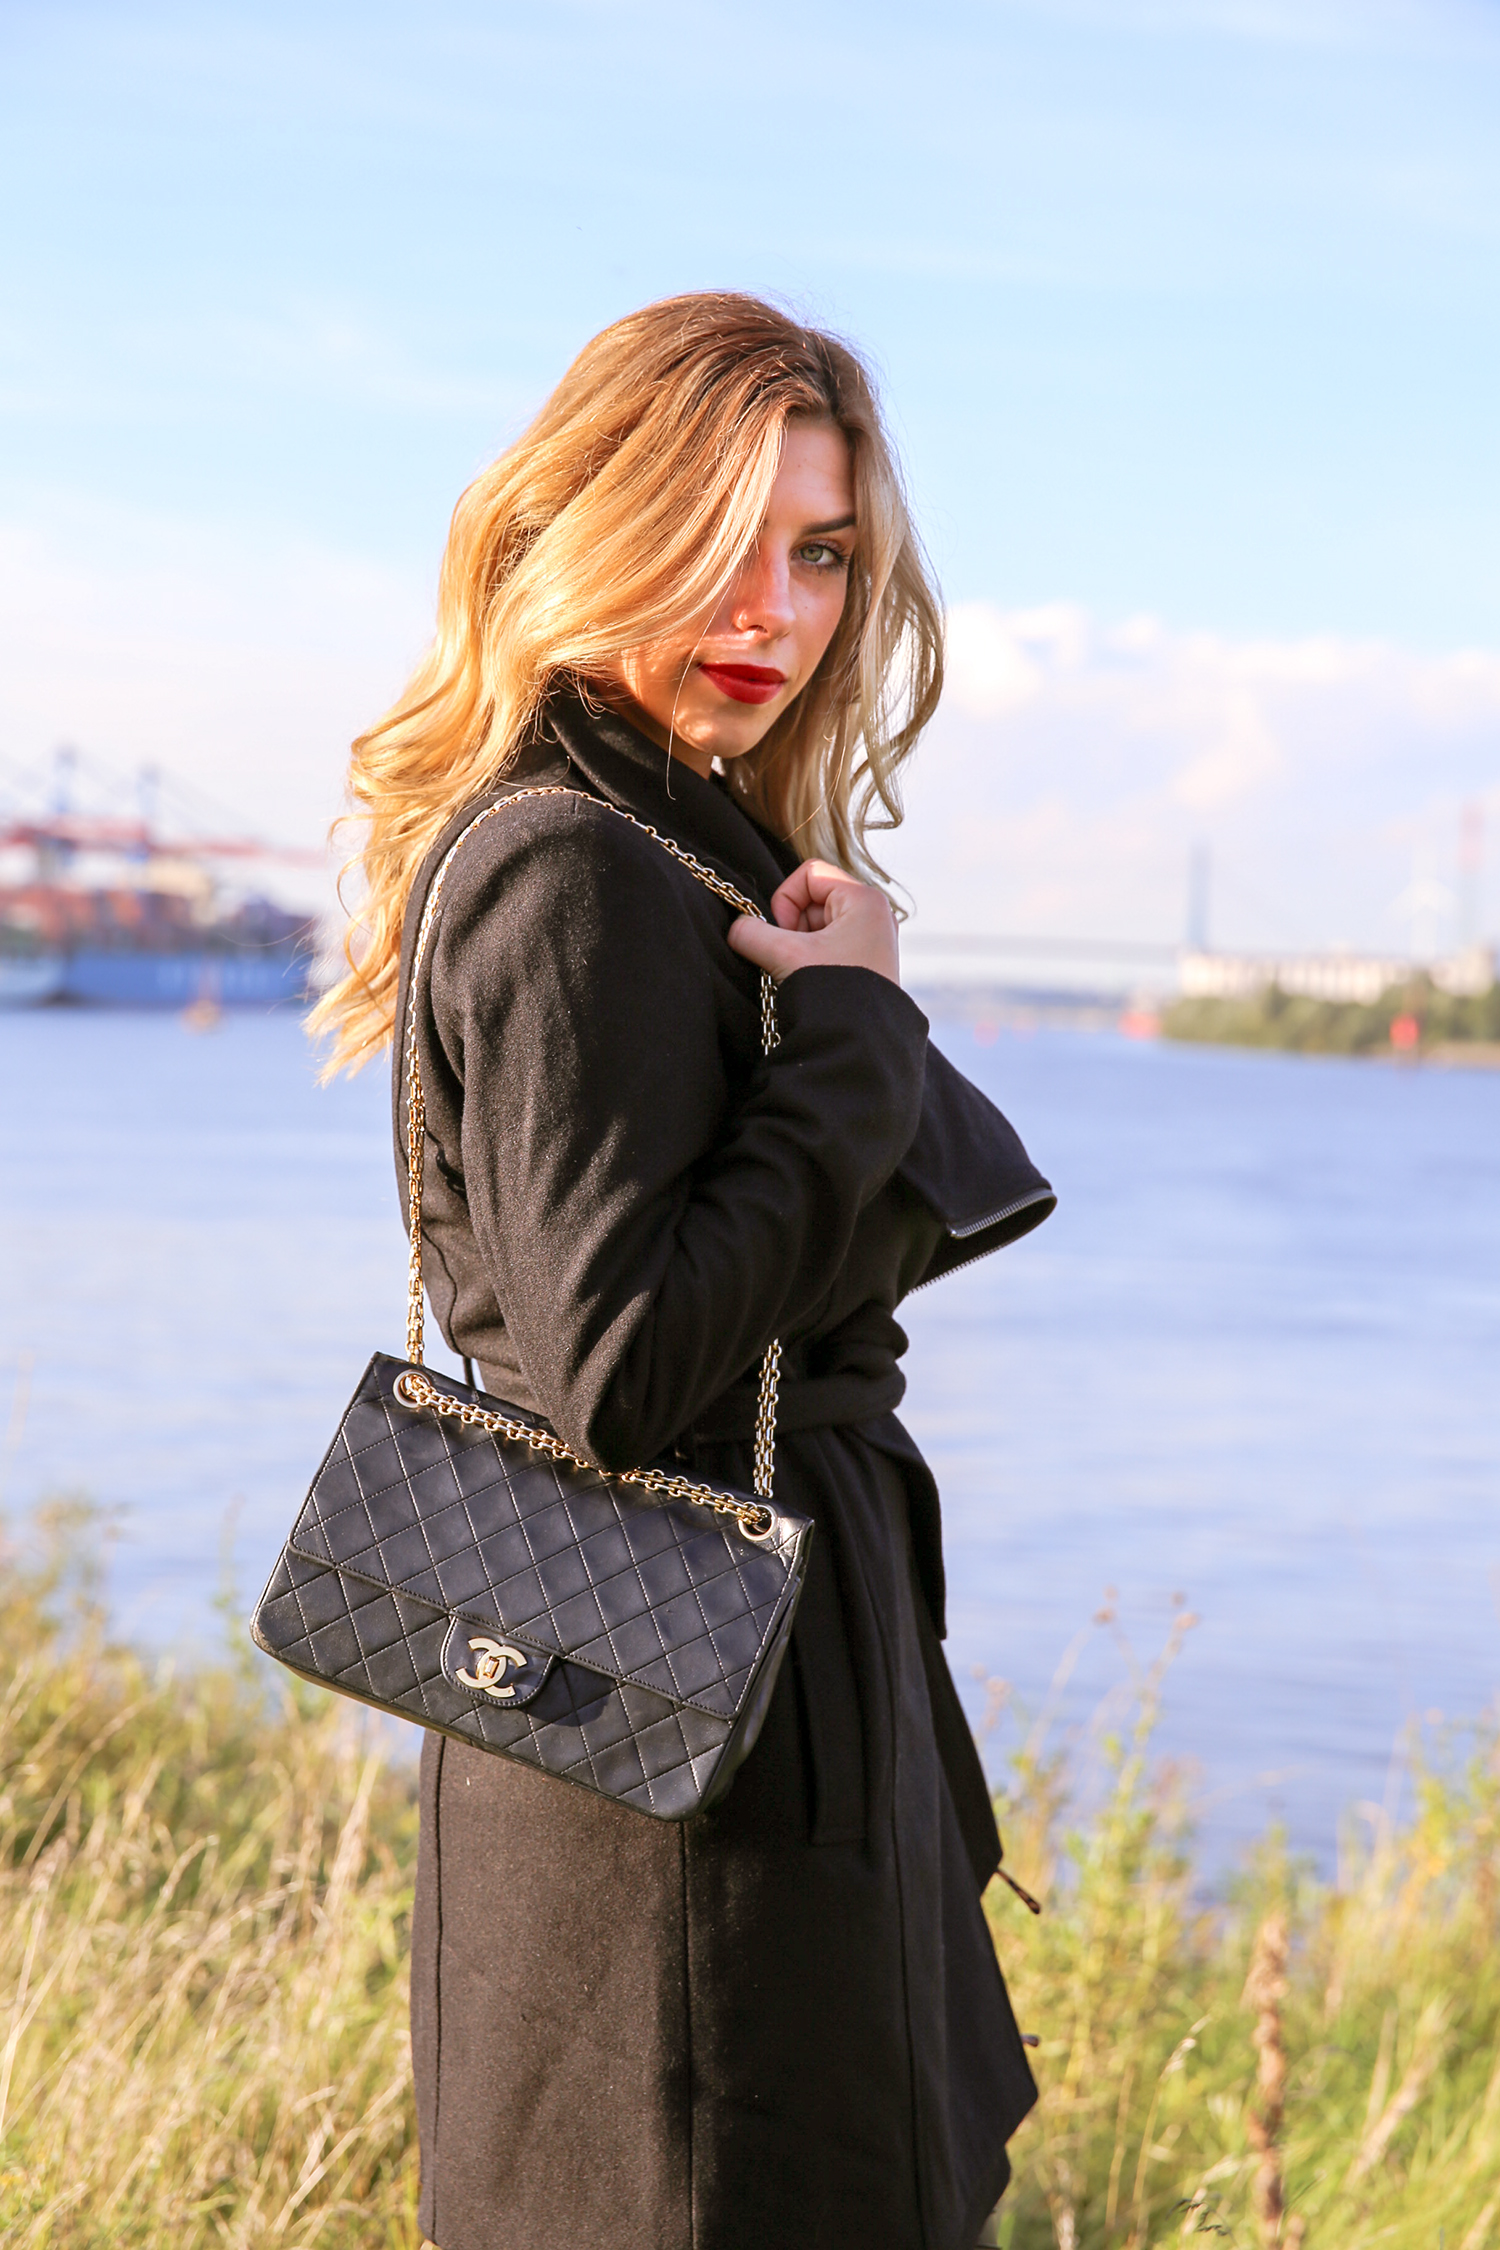 Luisa_Biggest_German_Fashion_Blogger_Chanel_Bag_Hamburg